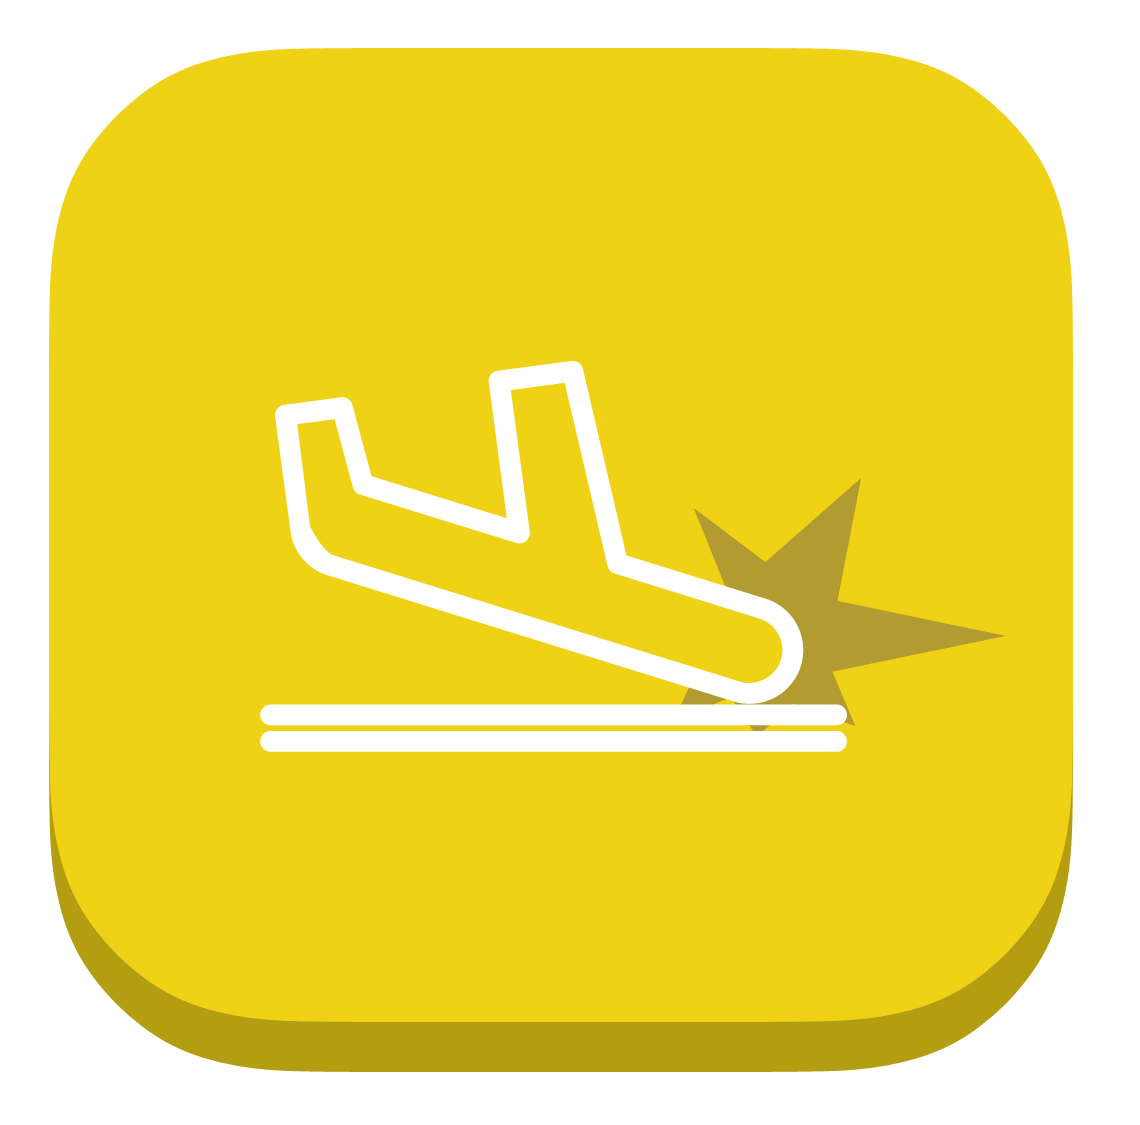 Safety clipart aviation safety. Accident statistics